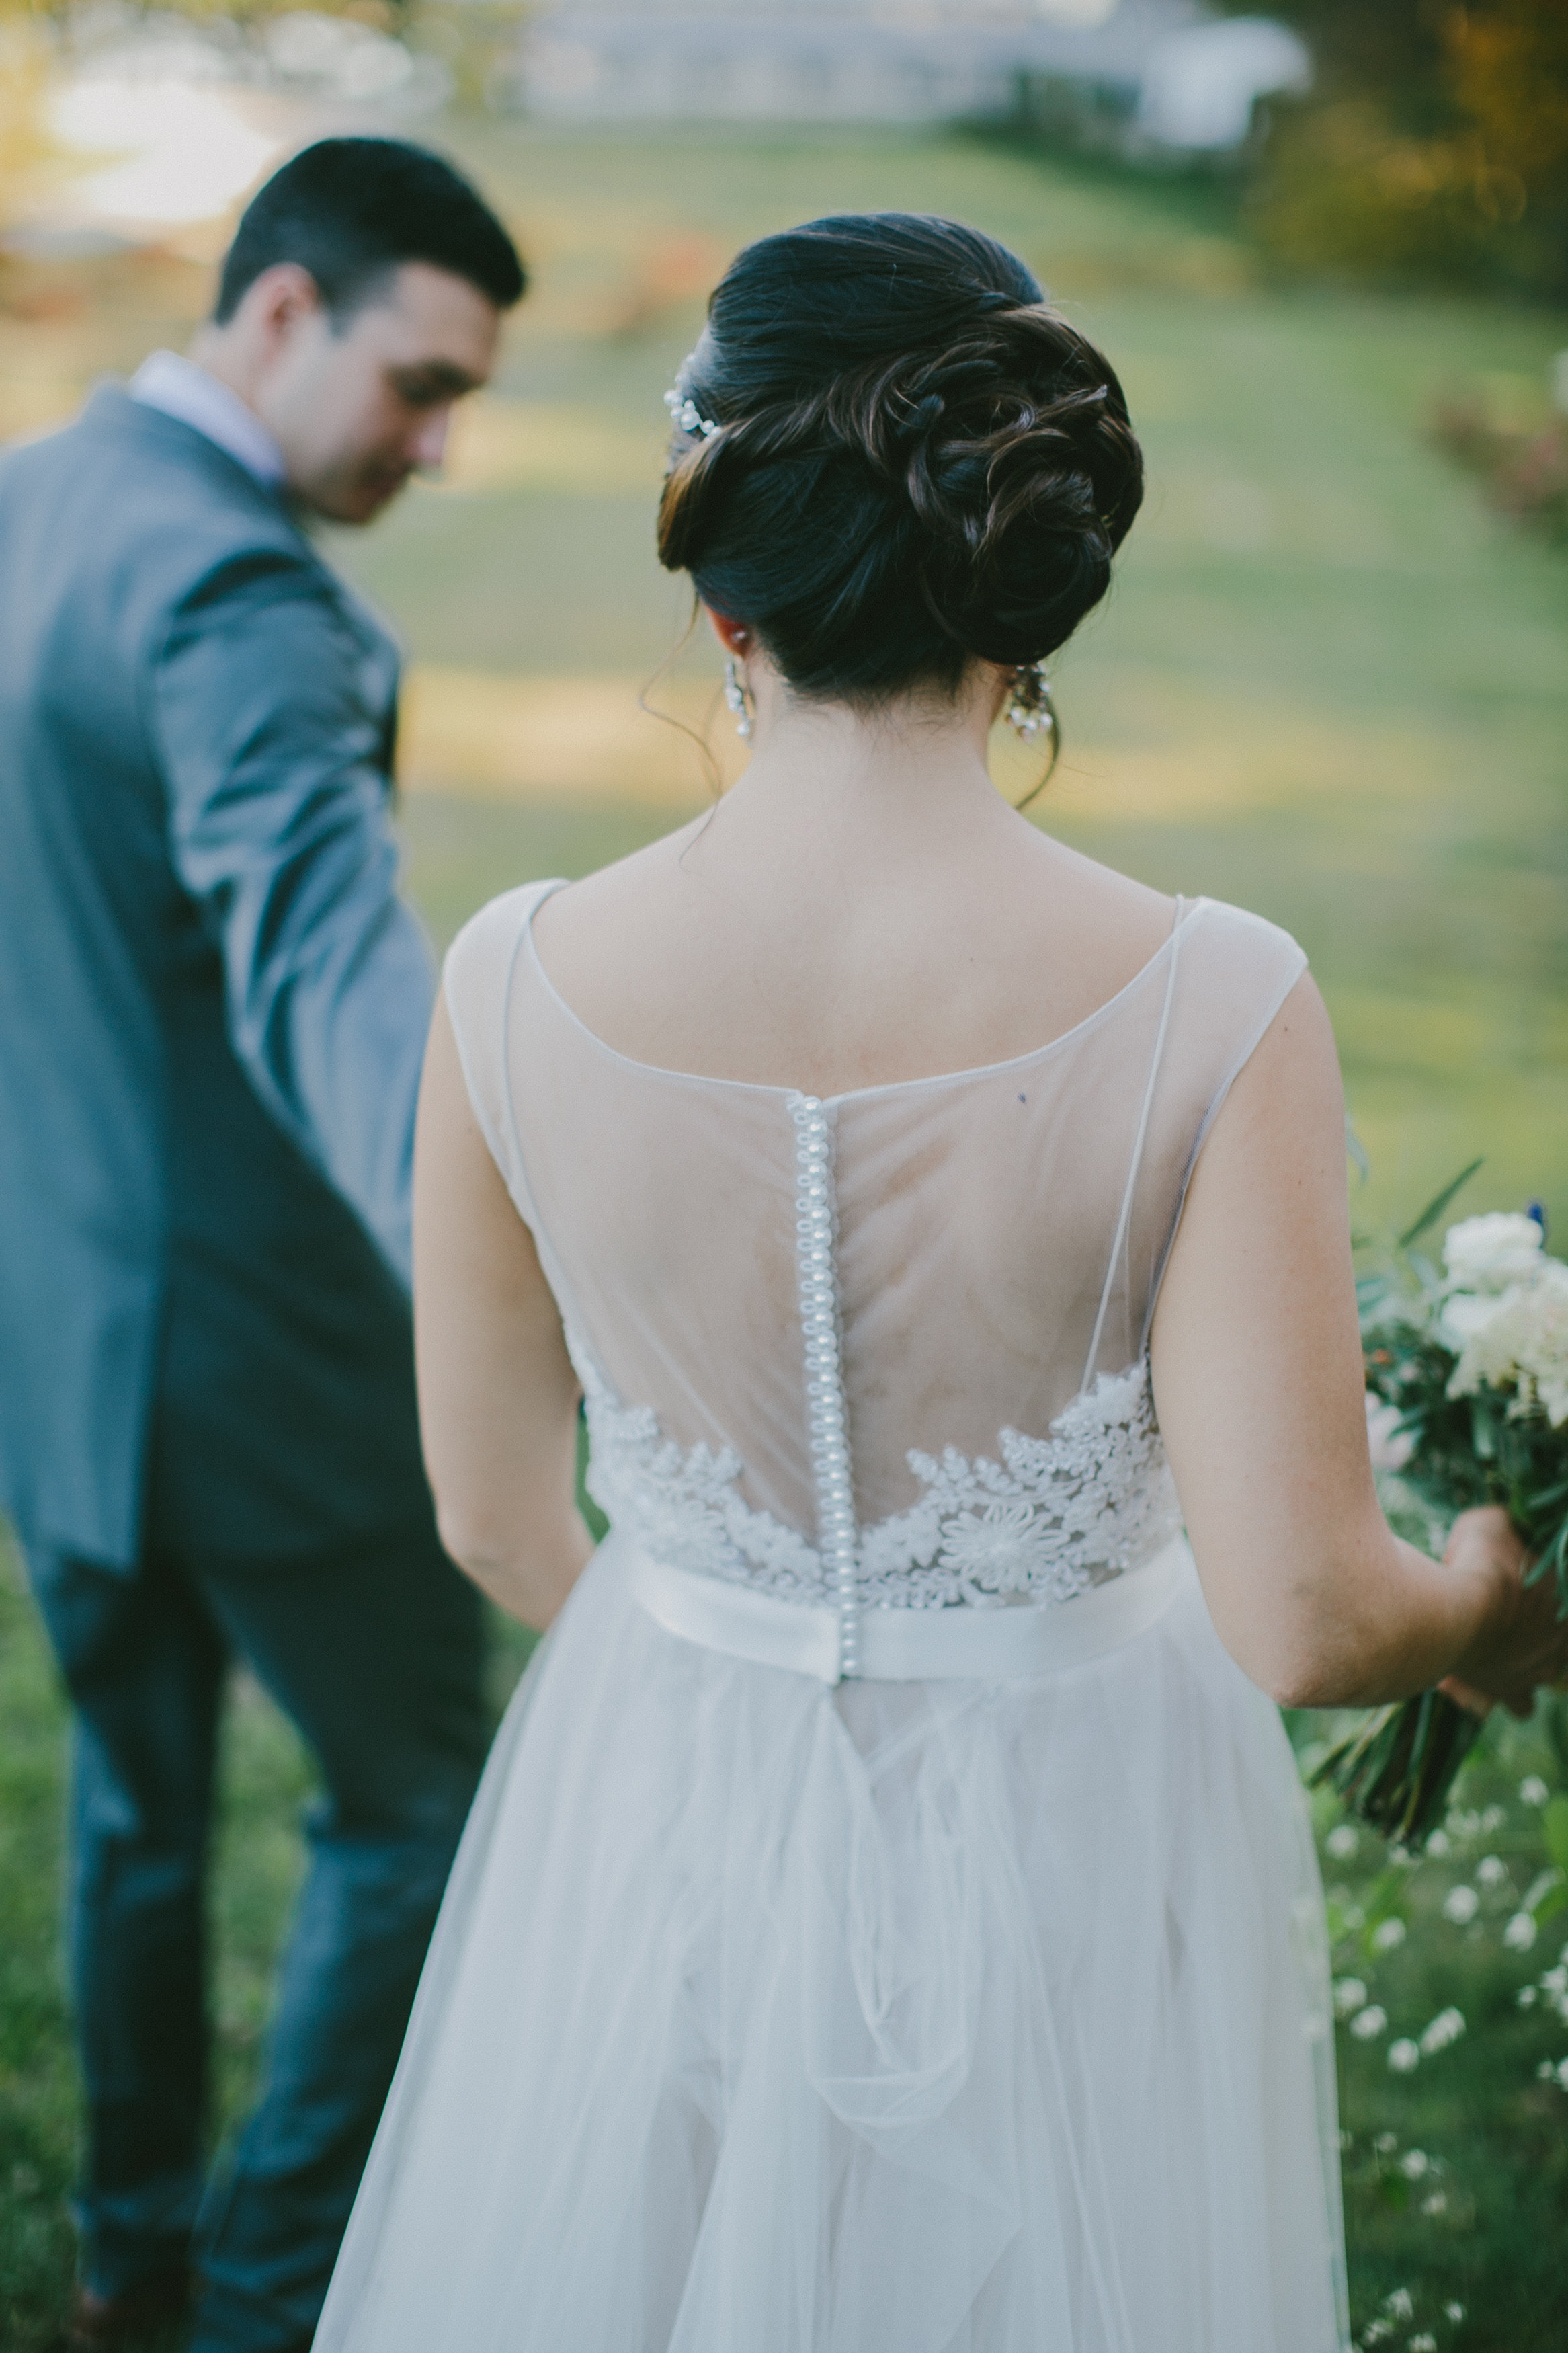 selling your wedding dress | one bride's story